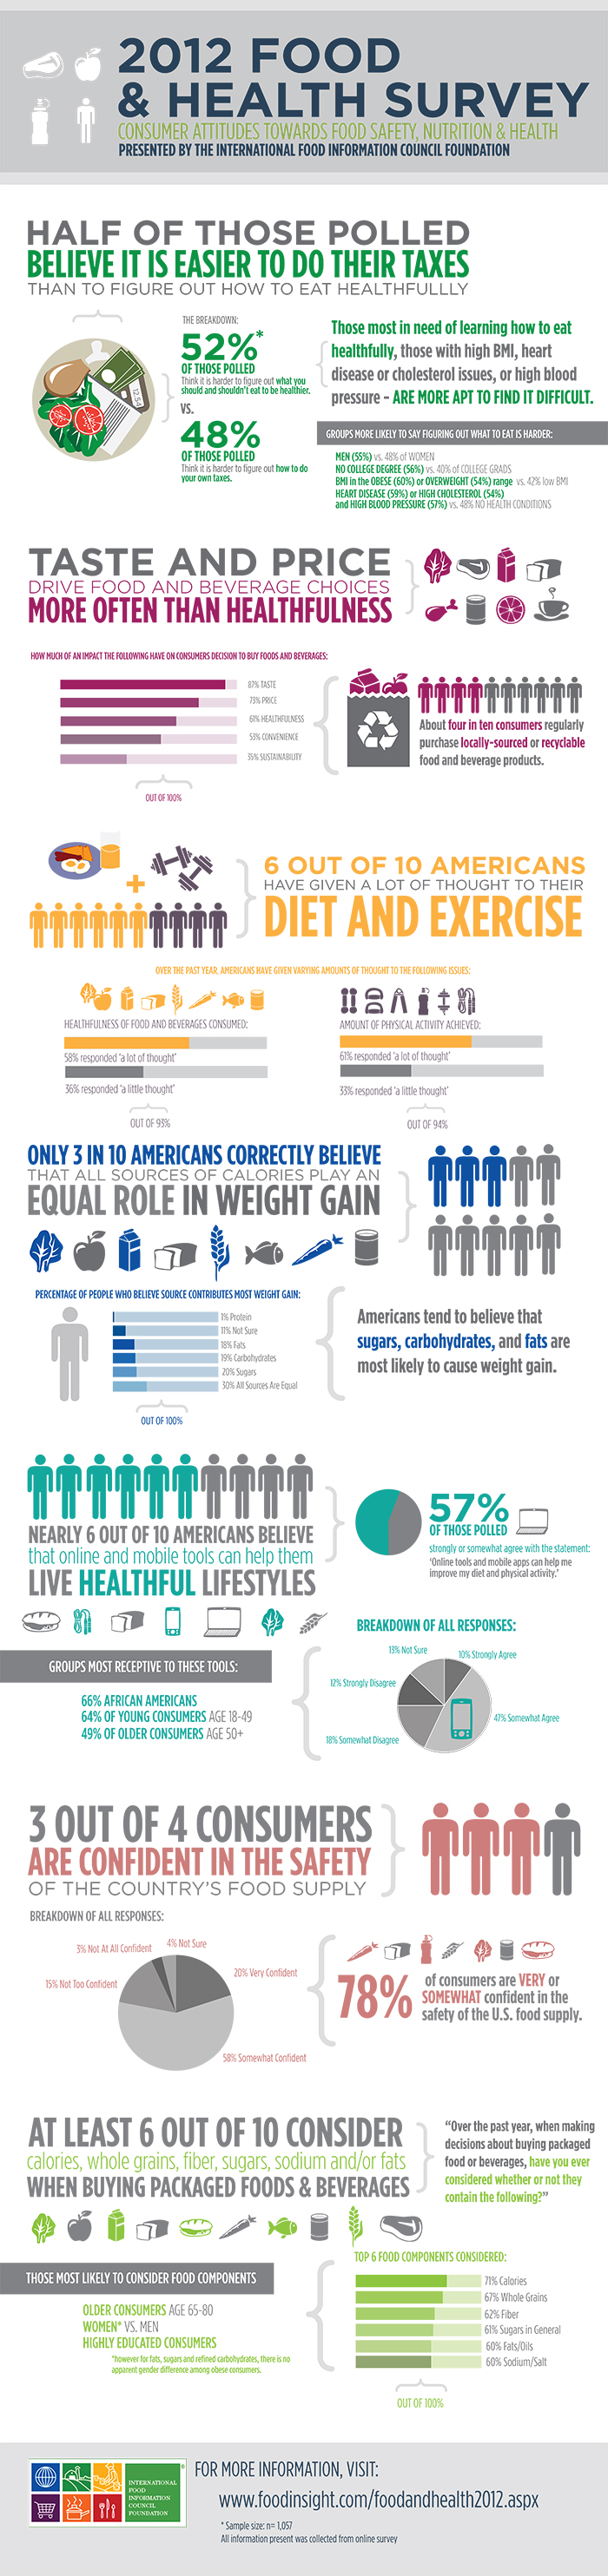 Food and Health Survey Infographic